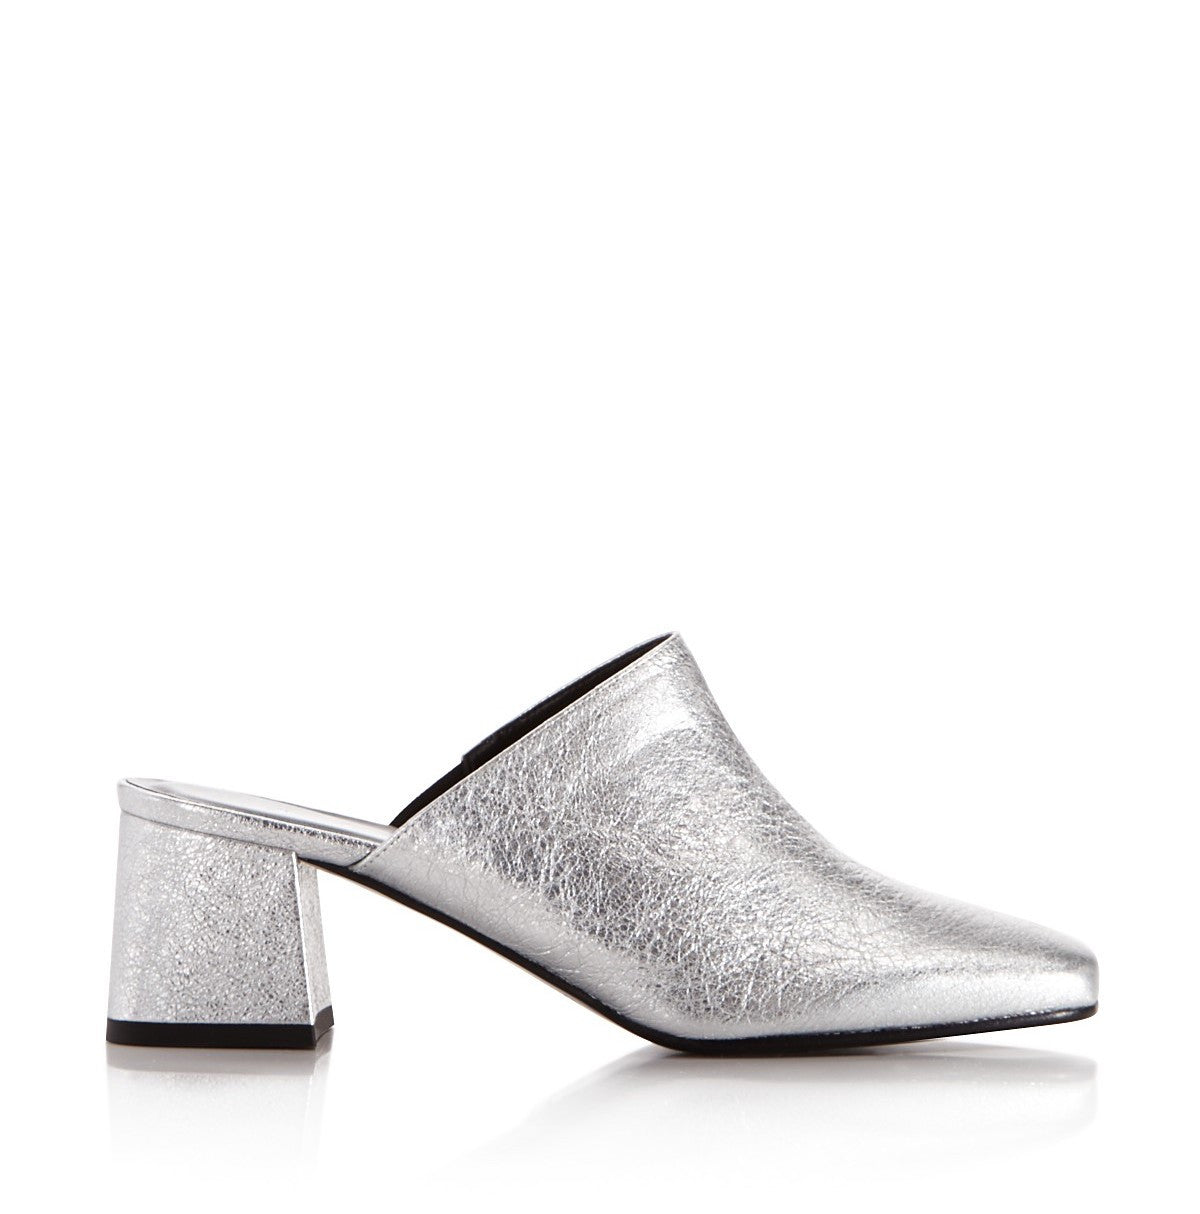 Aska Gem Leather Mules good selling for sale buy cheap shopping online browse cheap price with credit card free shipping O1tYaM